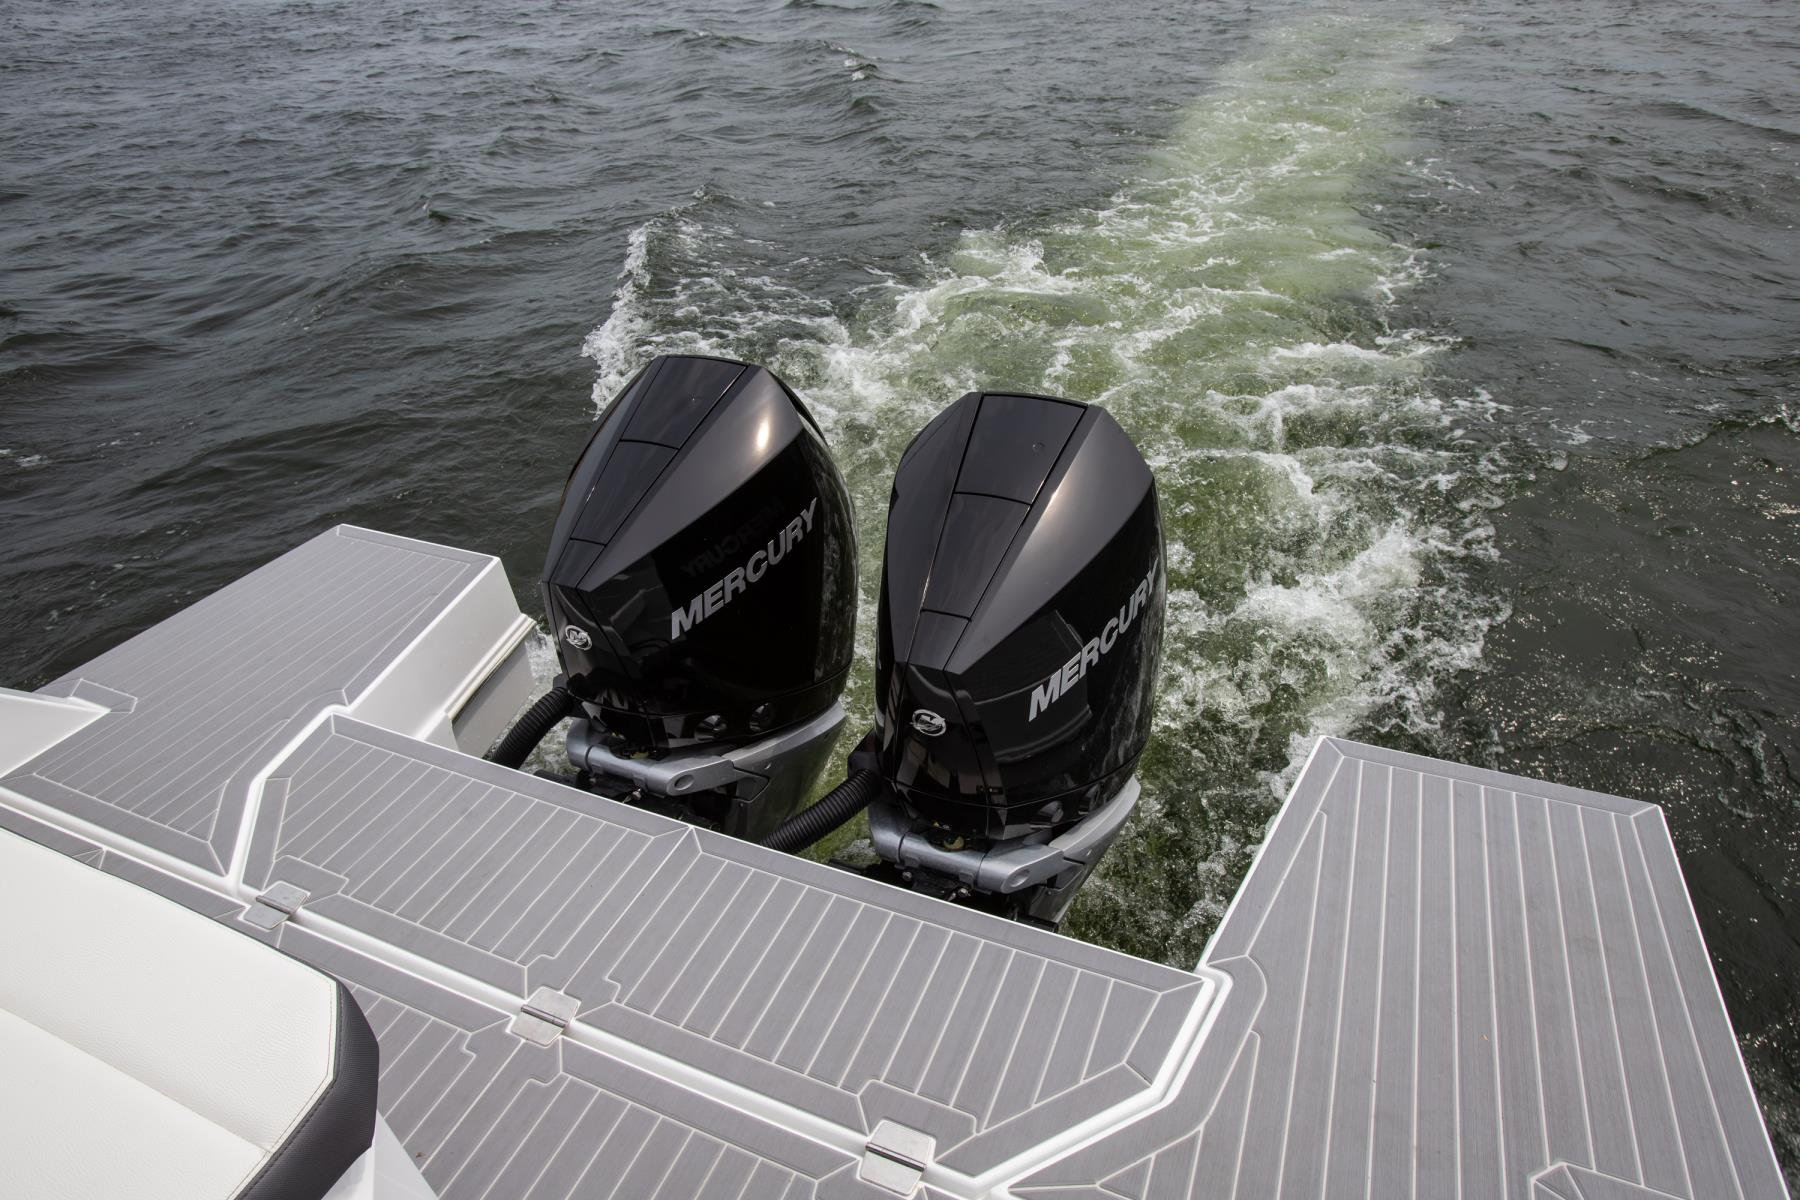 Engines of a Cruiser Yachts 34 GLS